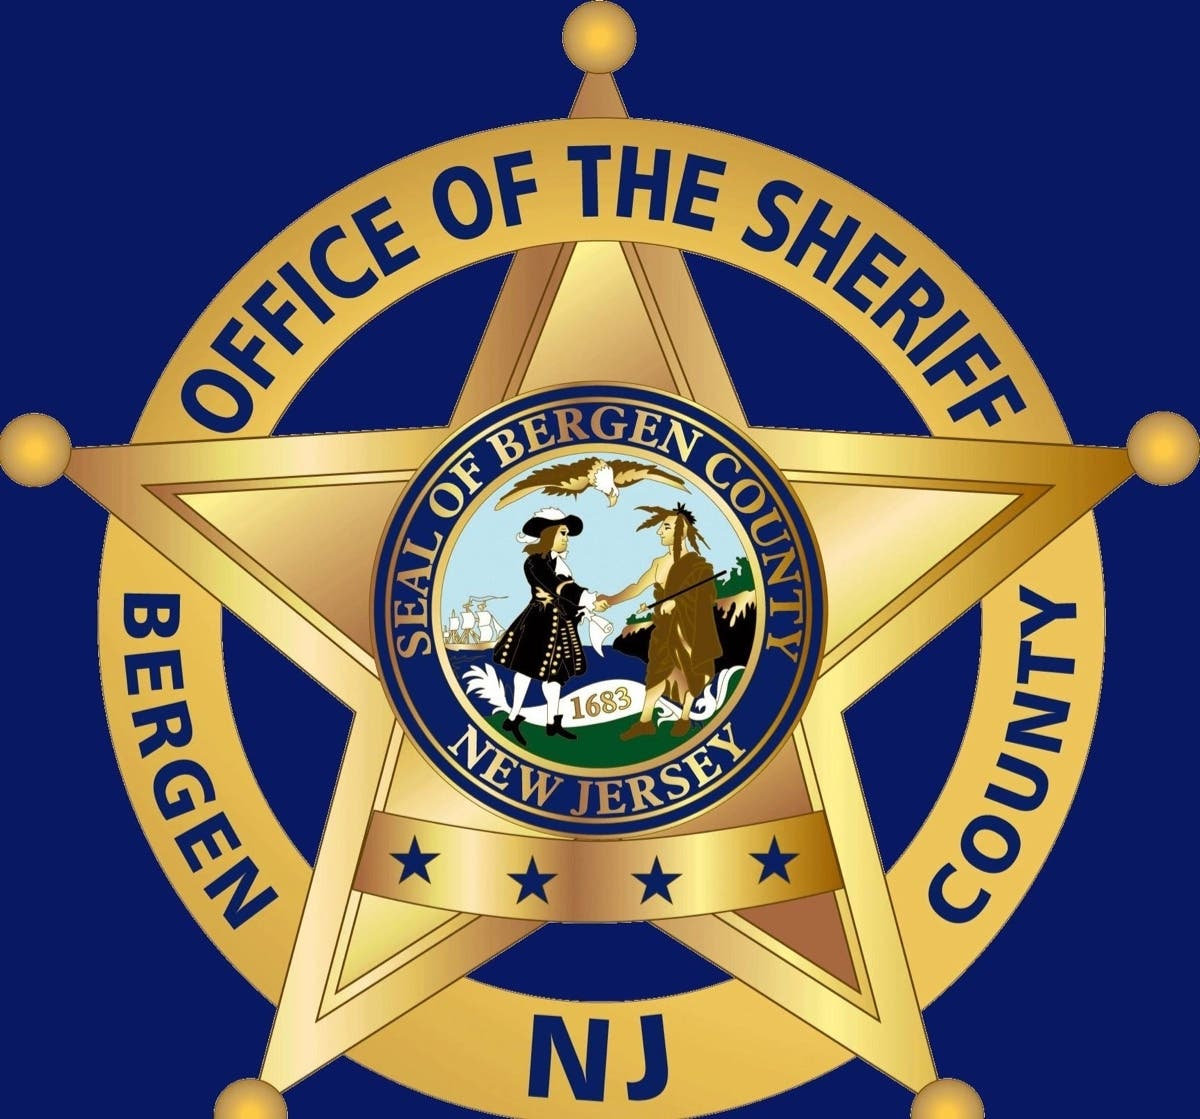 Register Now For Bergen County Sheriff's Citizen's Police